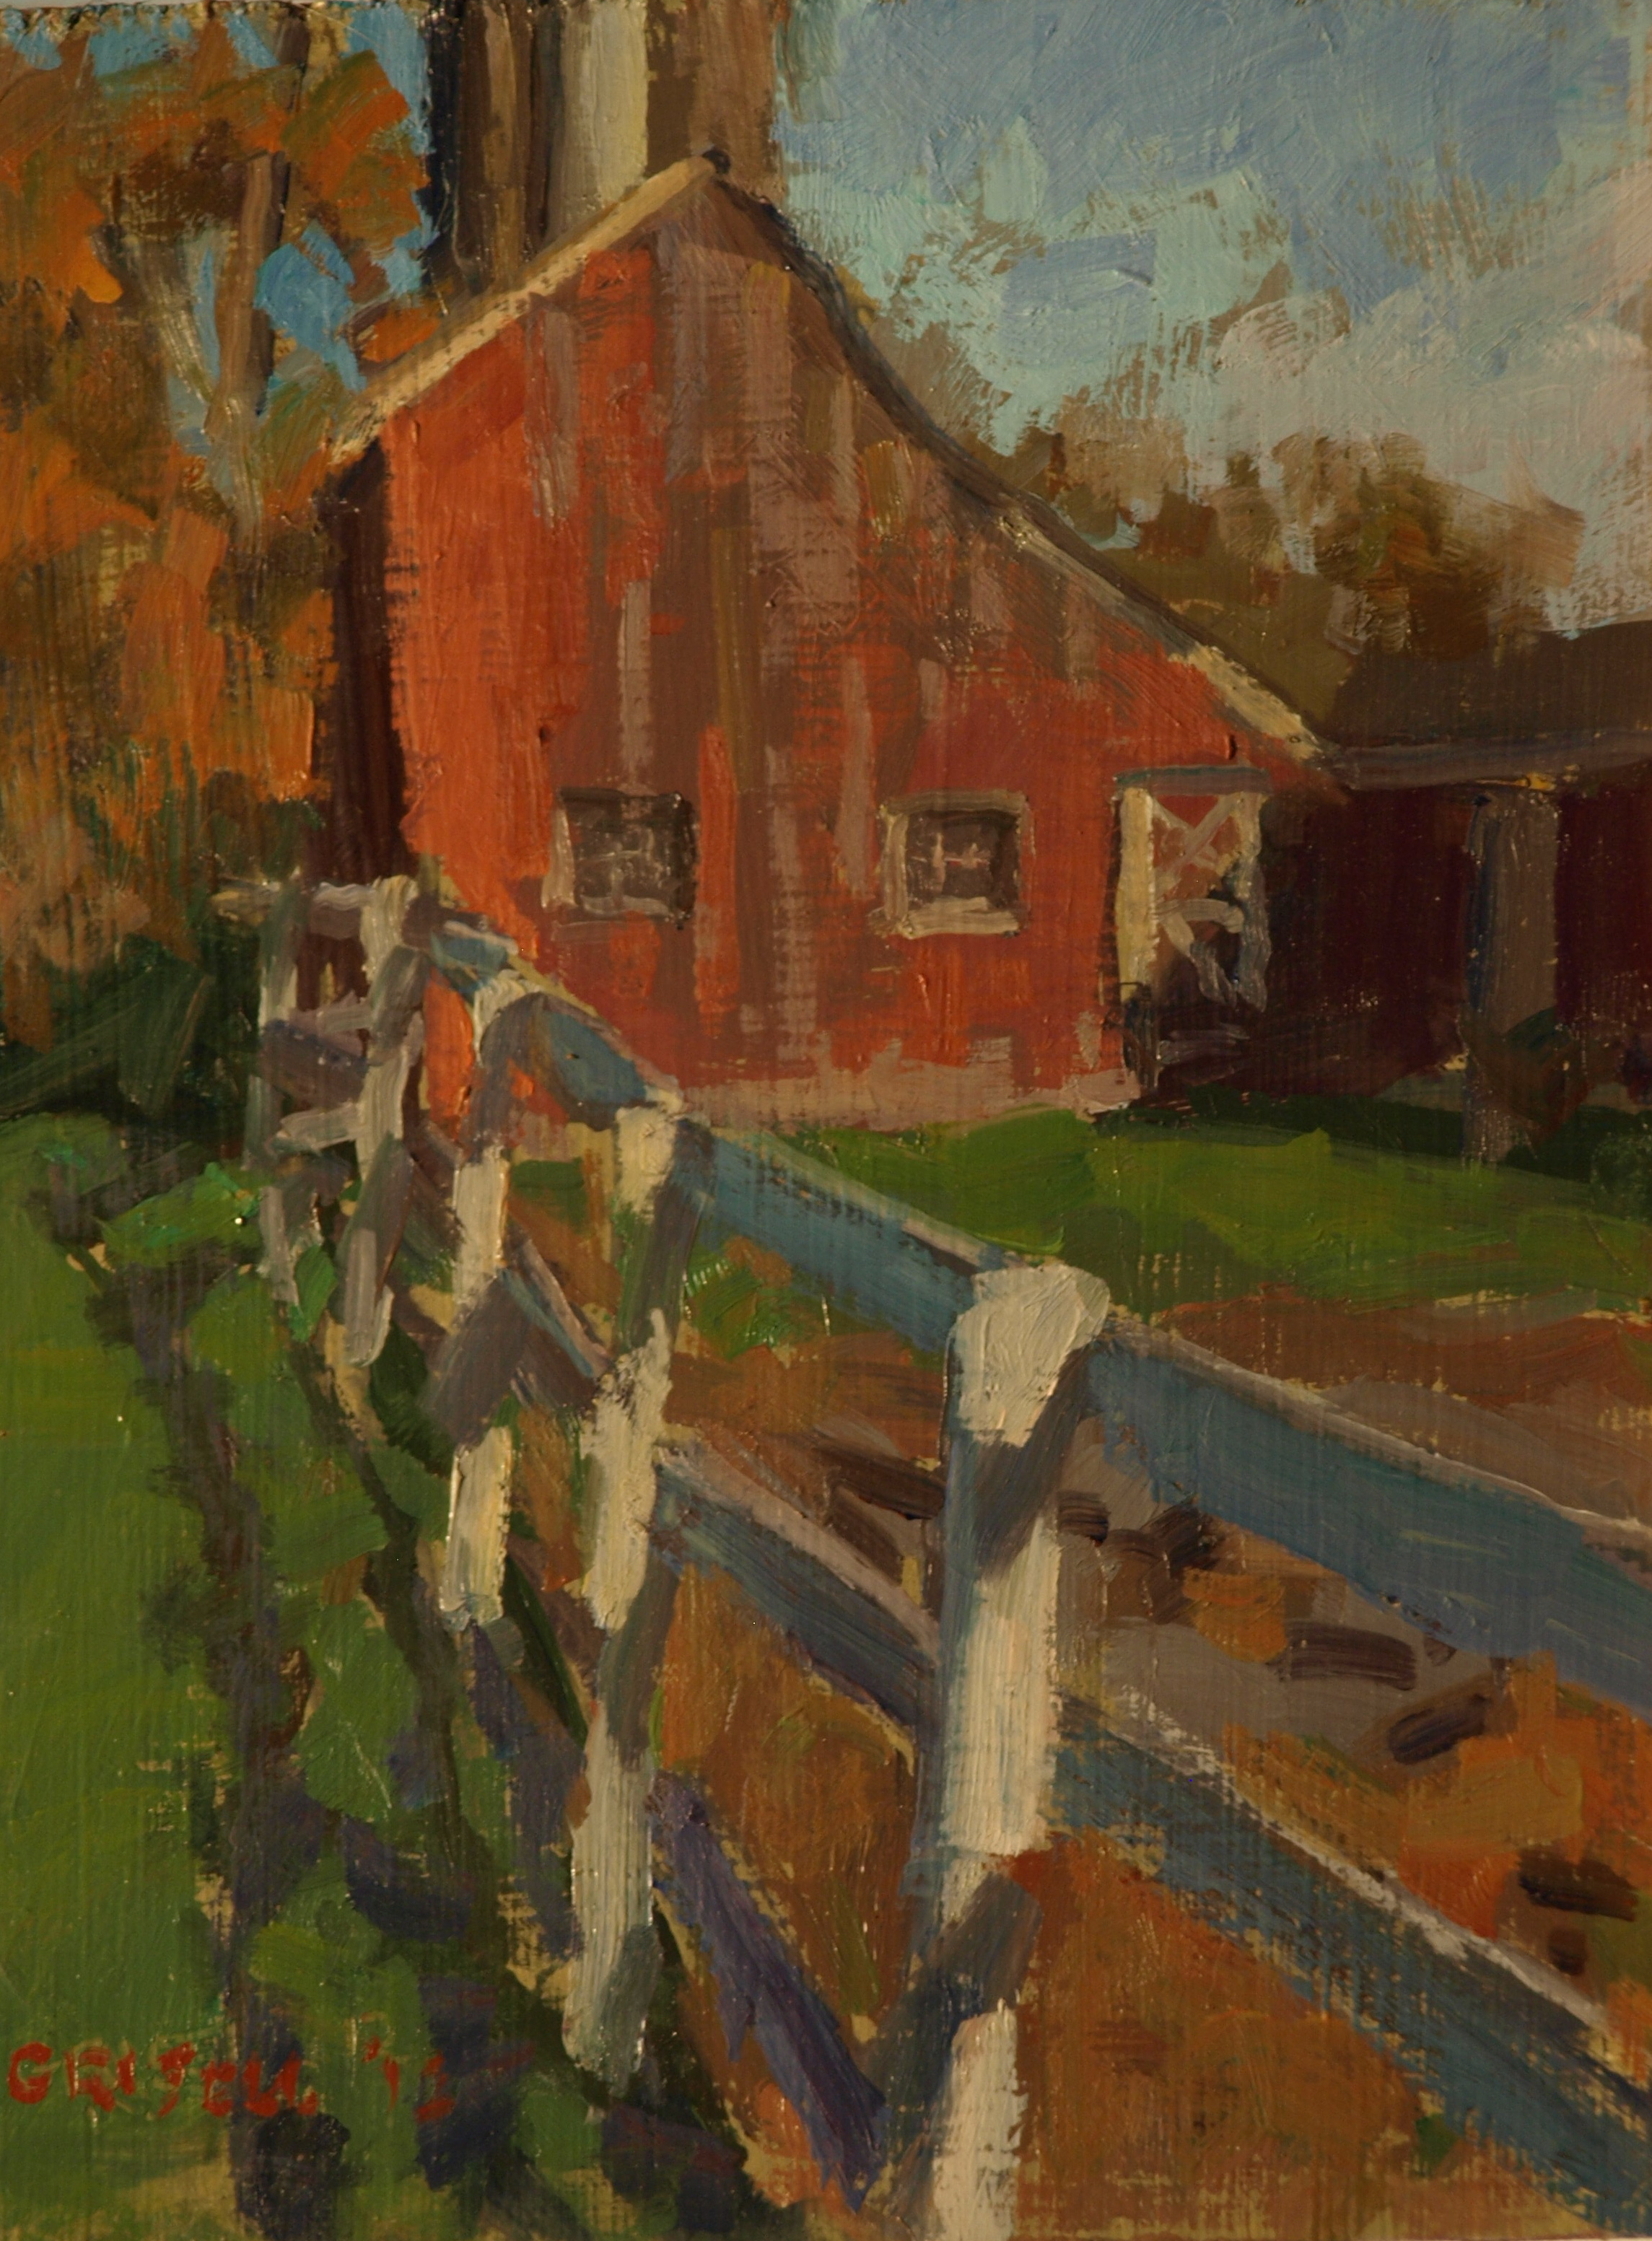 Barn and Fence, Oil on Canvas on Panel, 10 x 8 Inches, by Susan Grisell, $150